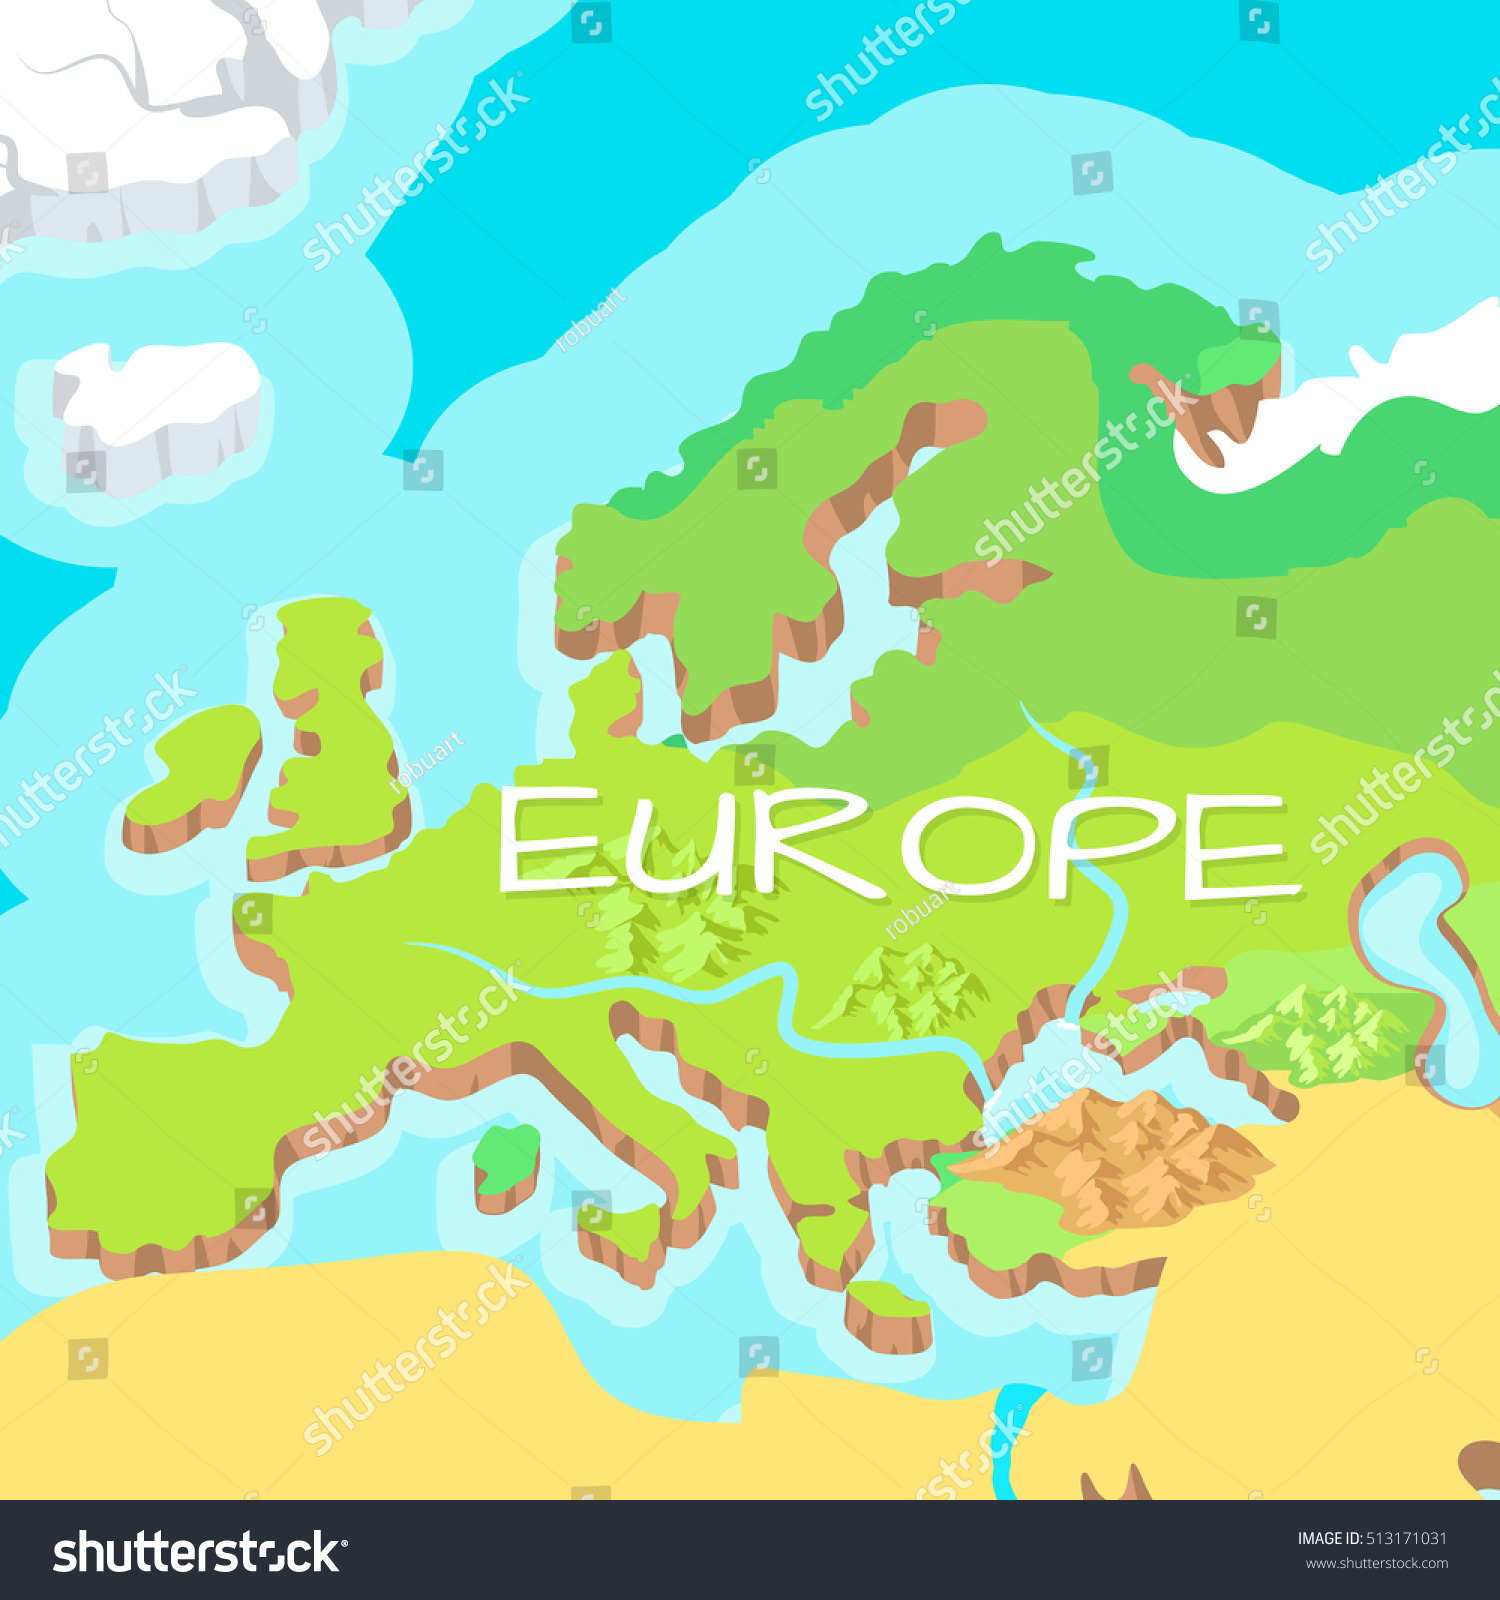 Picture of: Europe Mainland Cartoon Relief Map Mountains Stock Vector Royalty Free 513171031